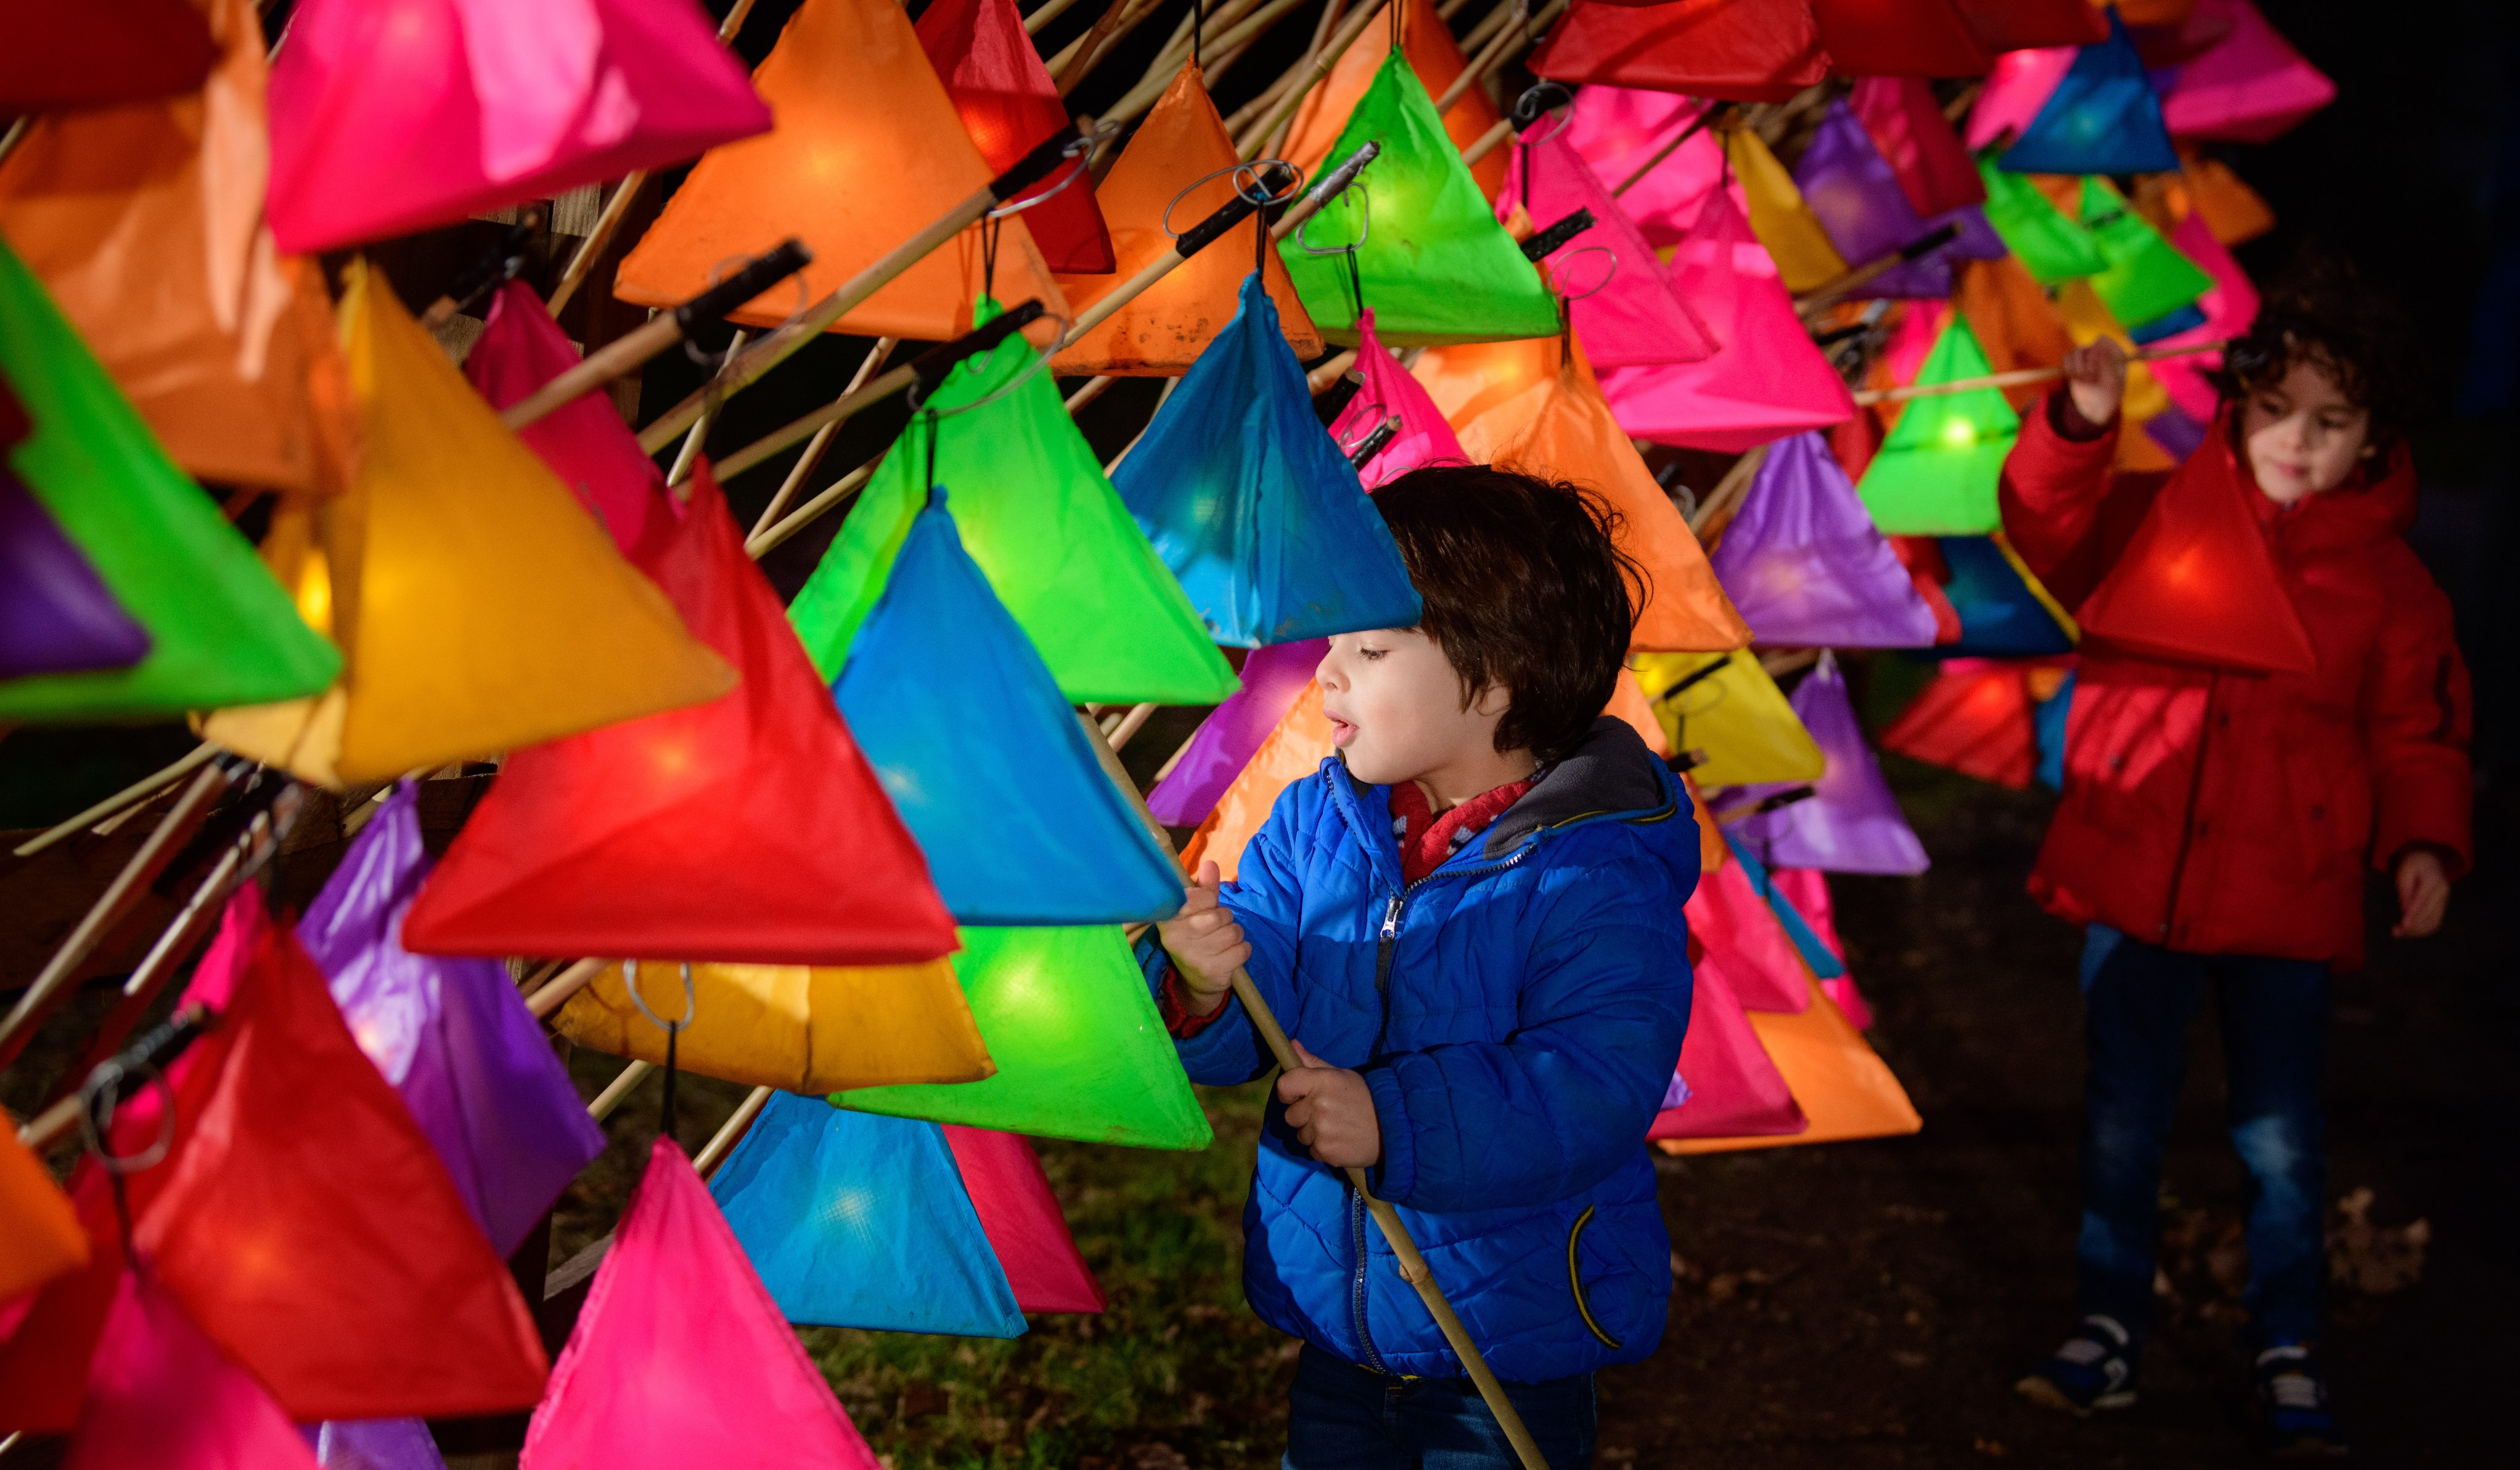 Children picking up Glow Wild hand-held lanterns